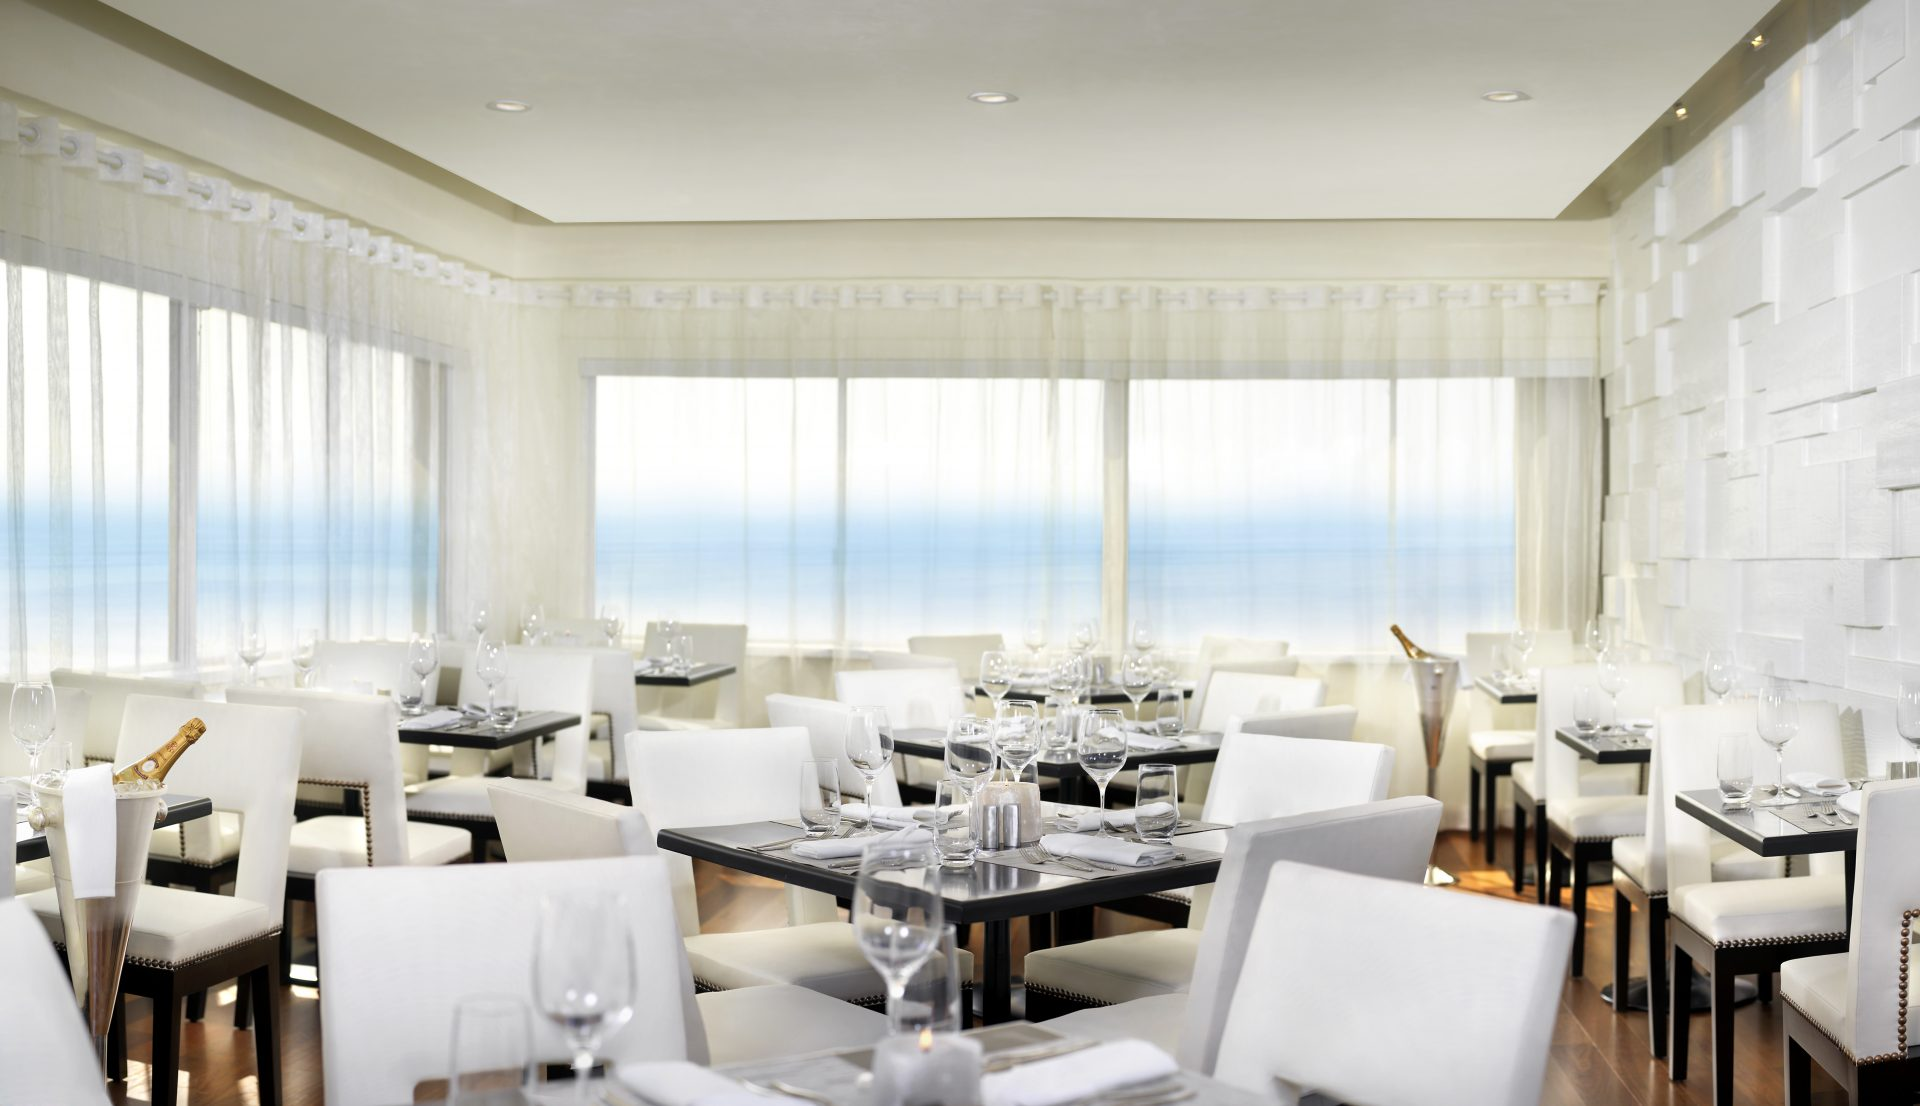 Penthouse Restaurant In Santa Monica Rooftop Dining